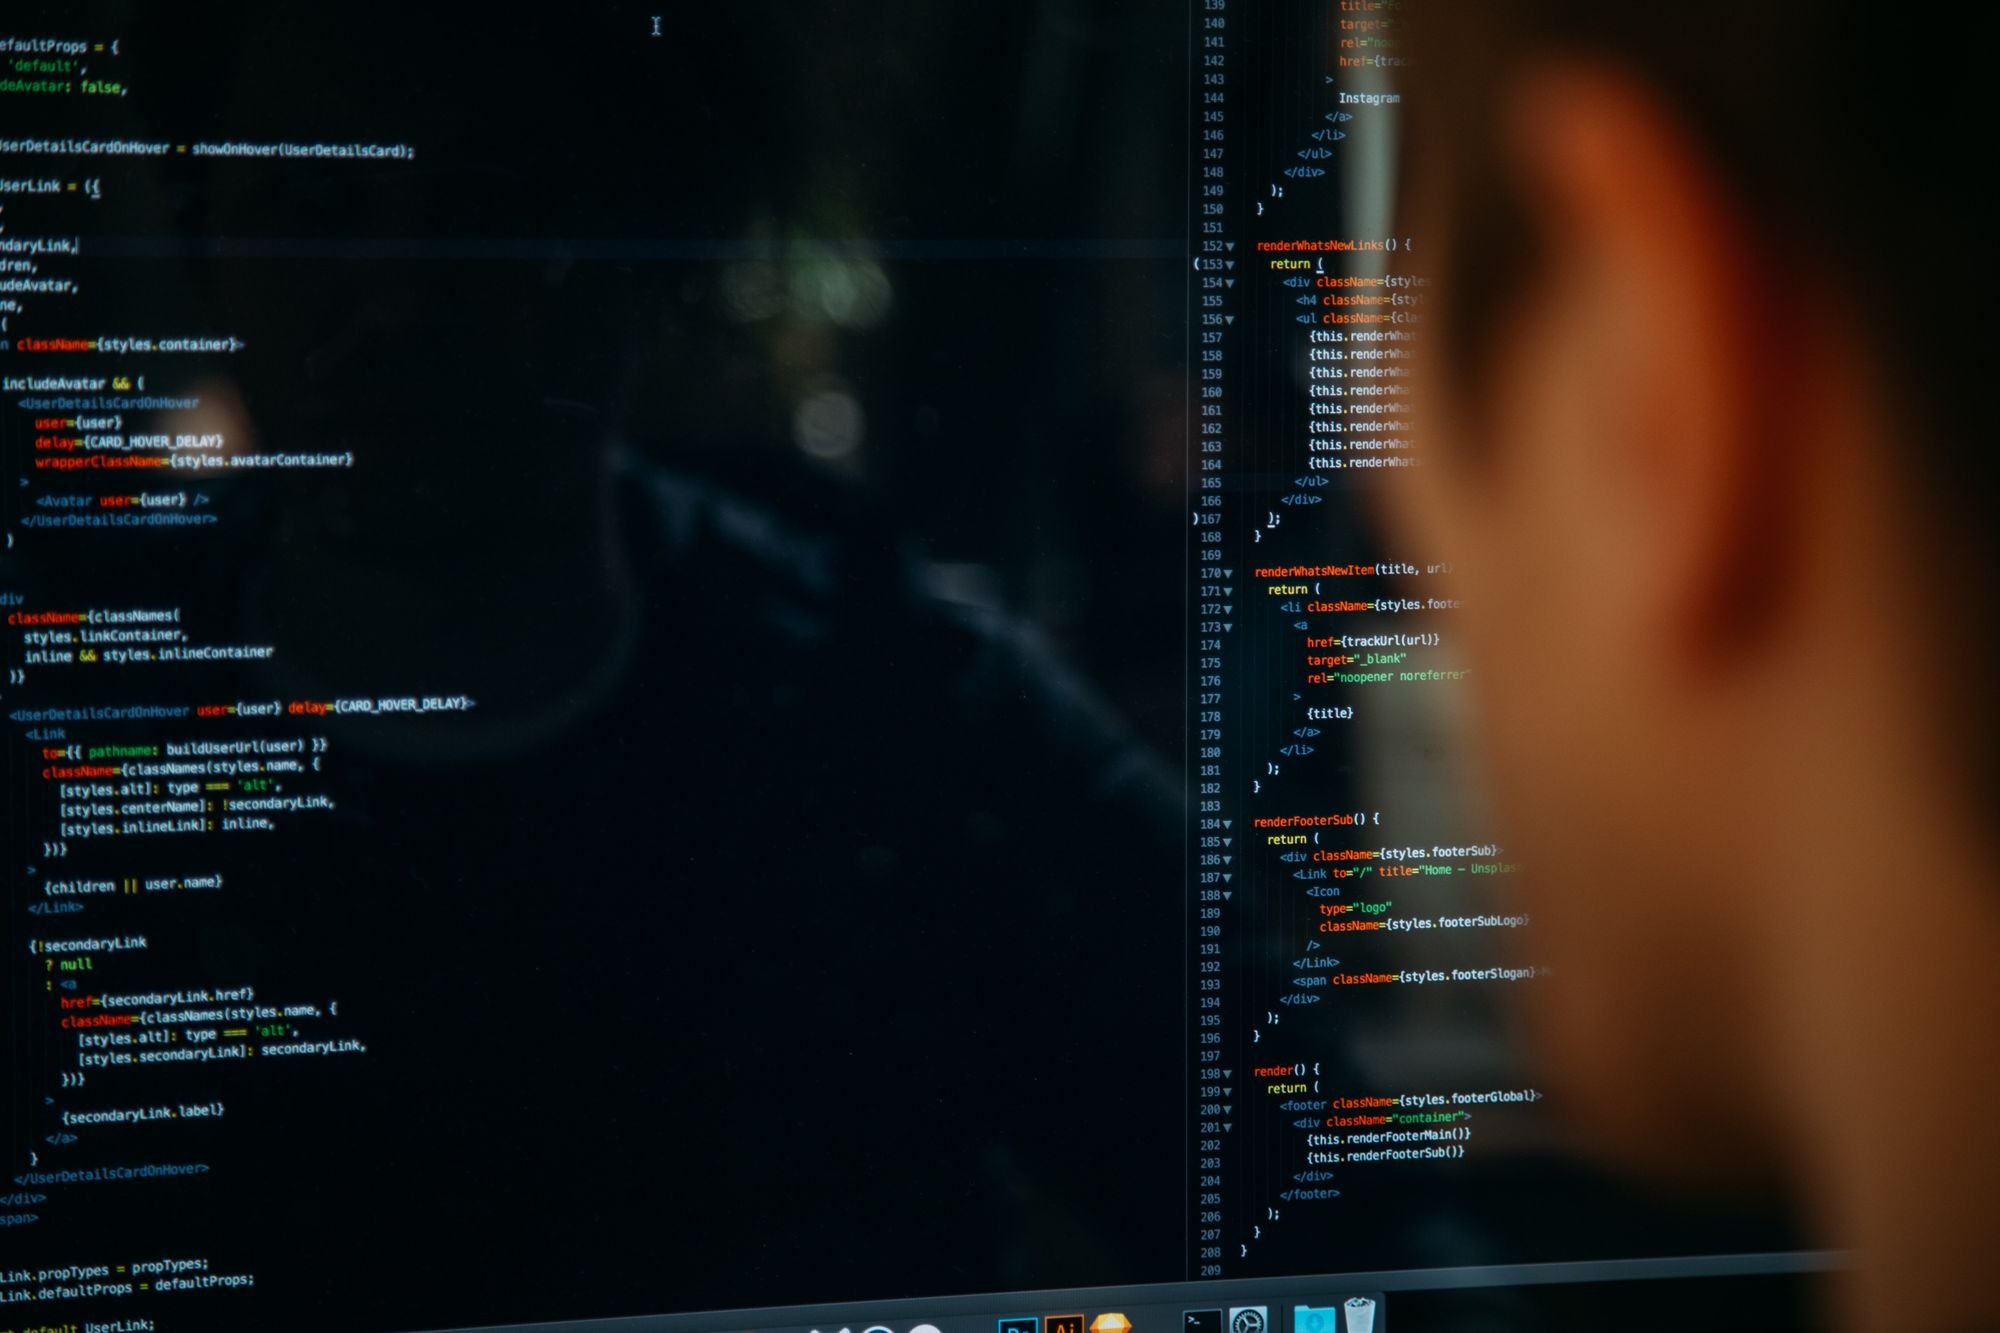 A person reviewing code on a large, dark monitor.